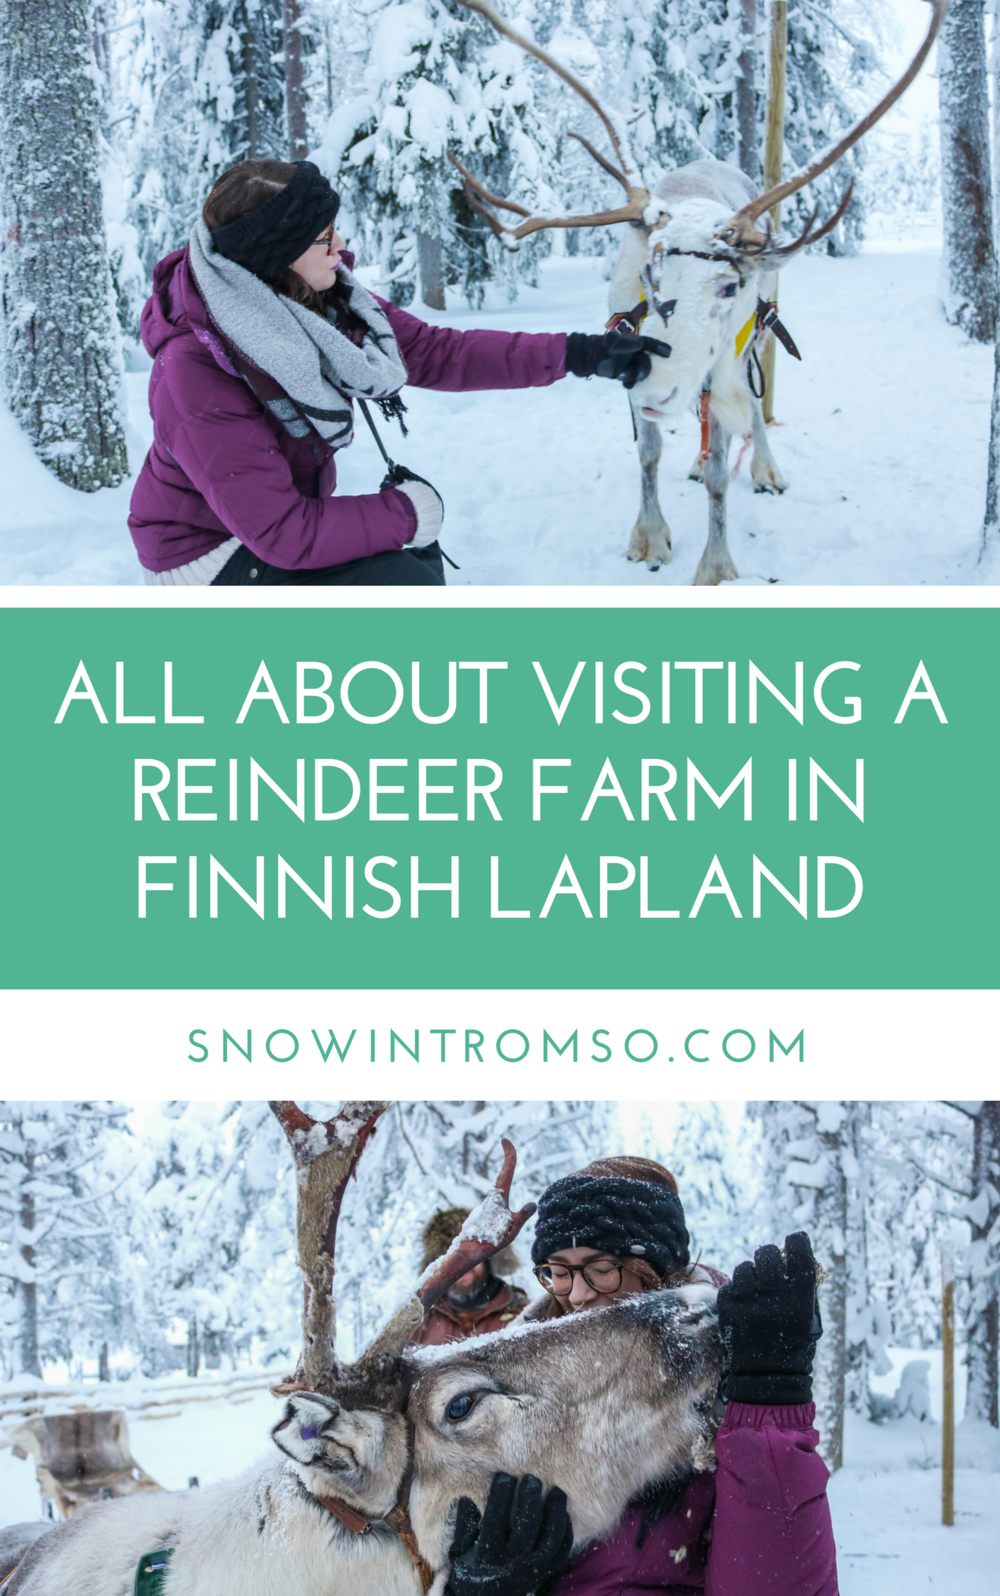 Would you like to pet a reindeer one day? @snowintromso takes you on a virtual trip to a reindeer farm in Finnish Lapland!